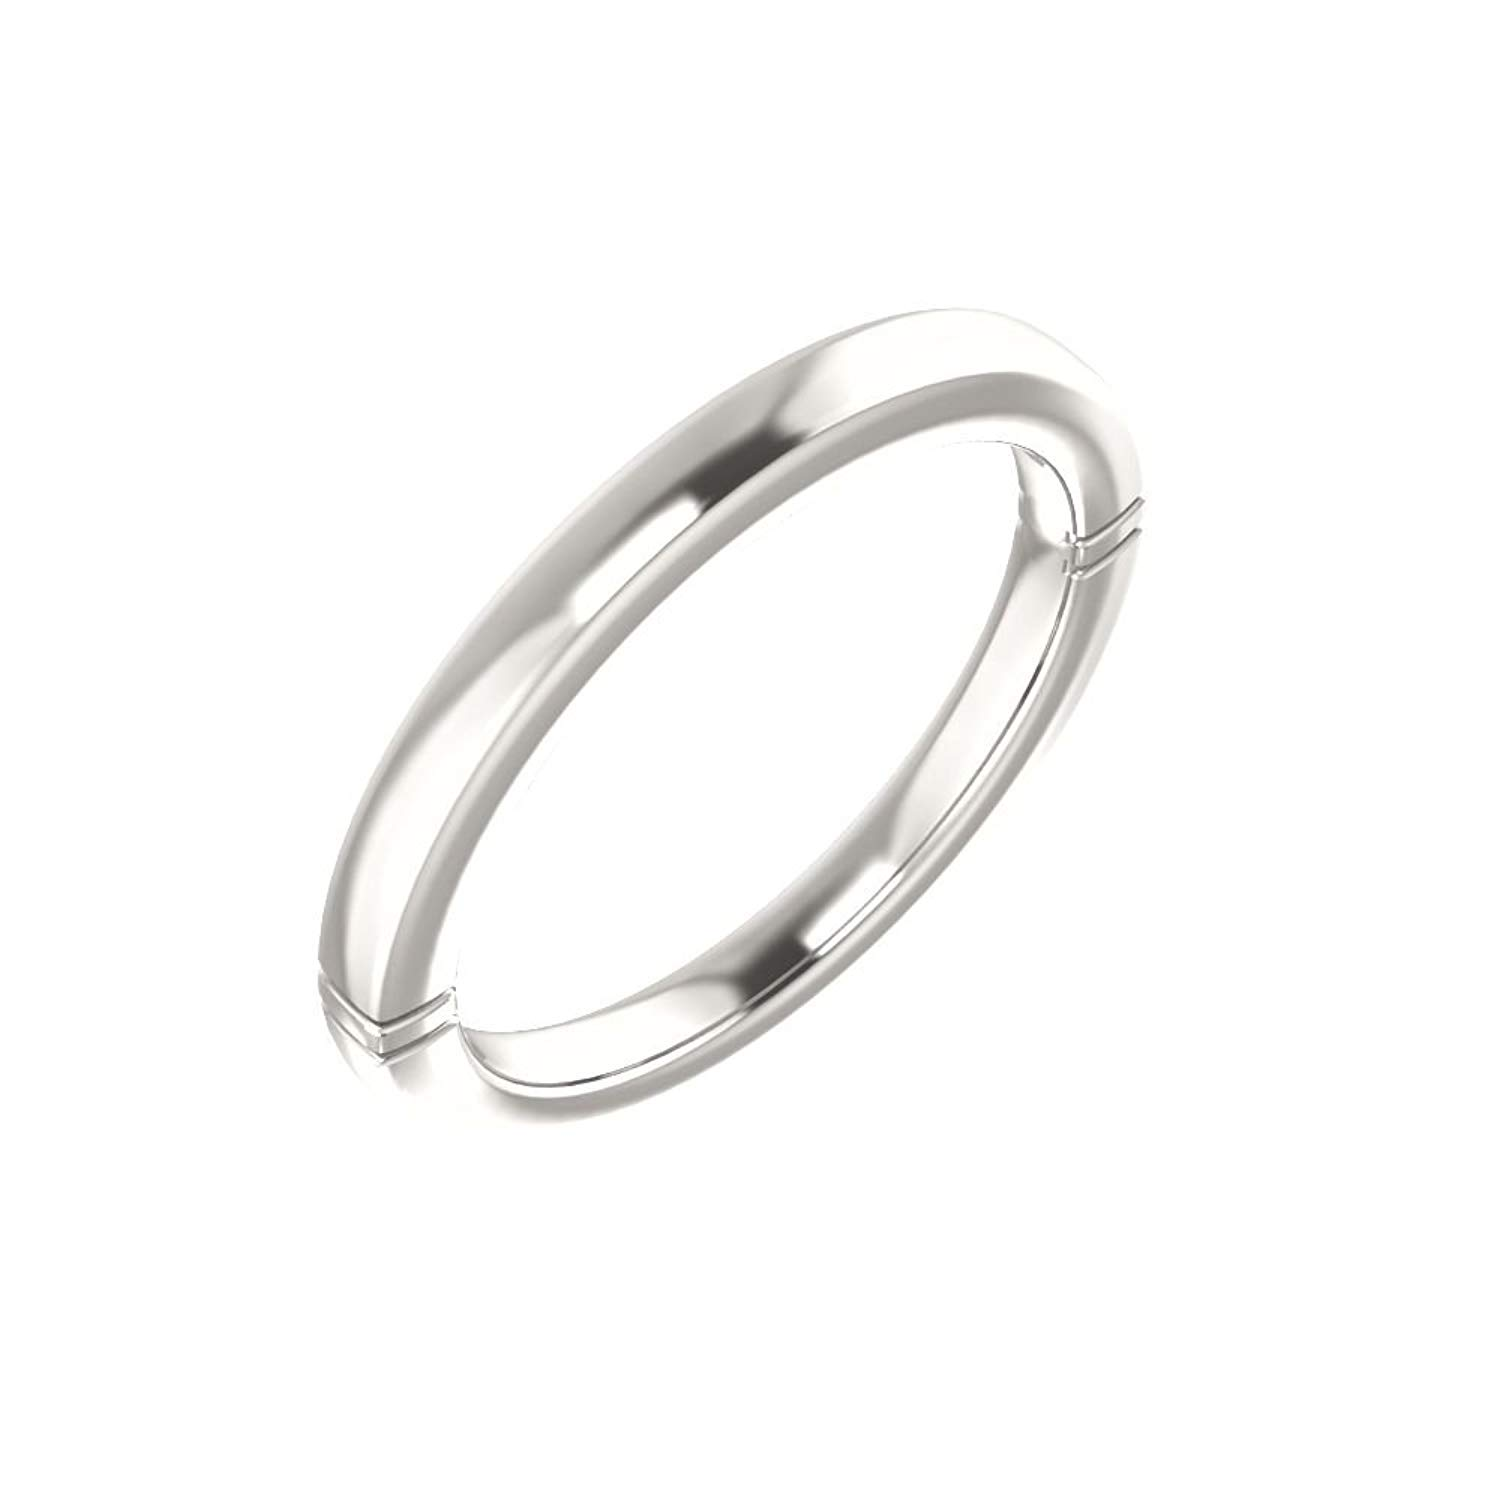 Bonyak Jewelry Continuum Sterling Silver Band for 5mm Square Ring - Size 7